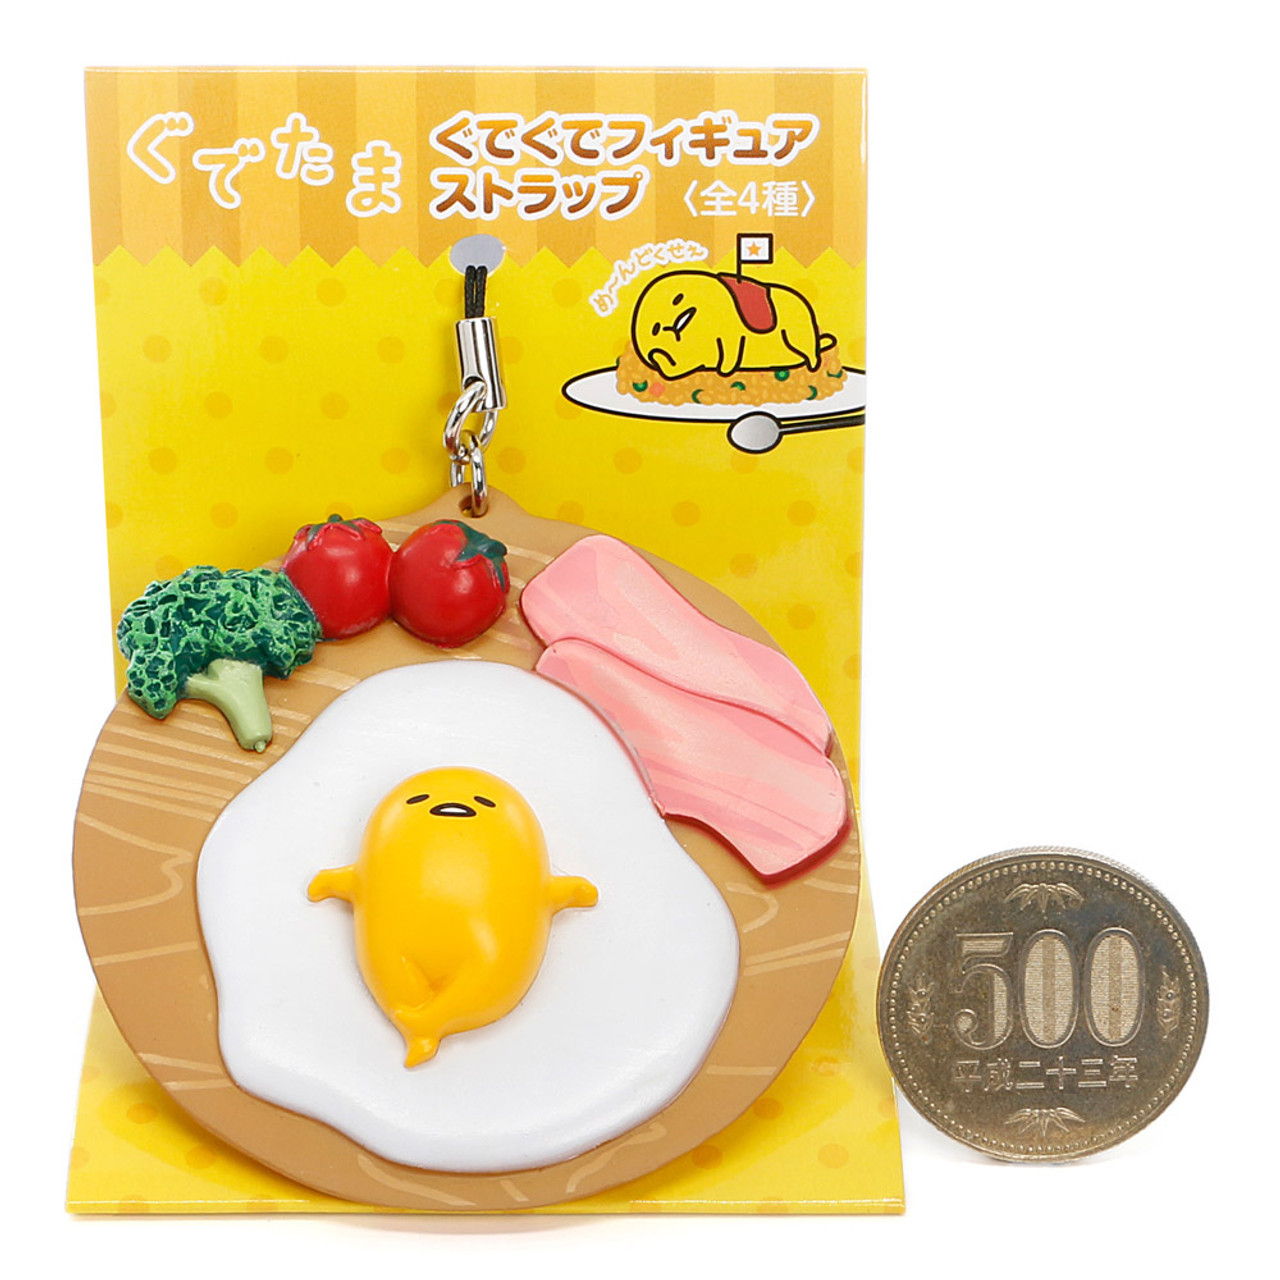 Sanrio Gudetama Lazy Egg Omelet Mascot Mobile Charms - Breakfast Dish ( Proportion )